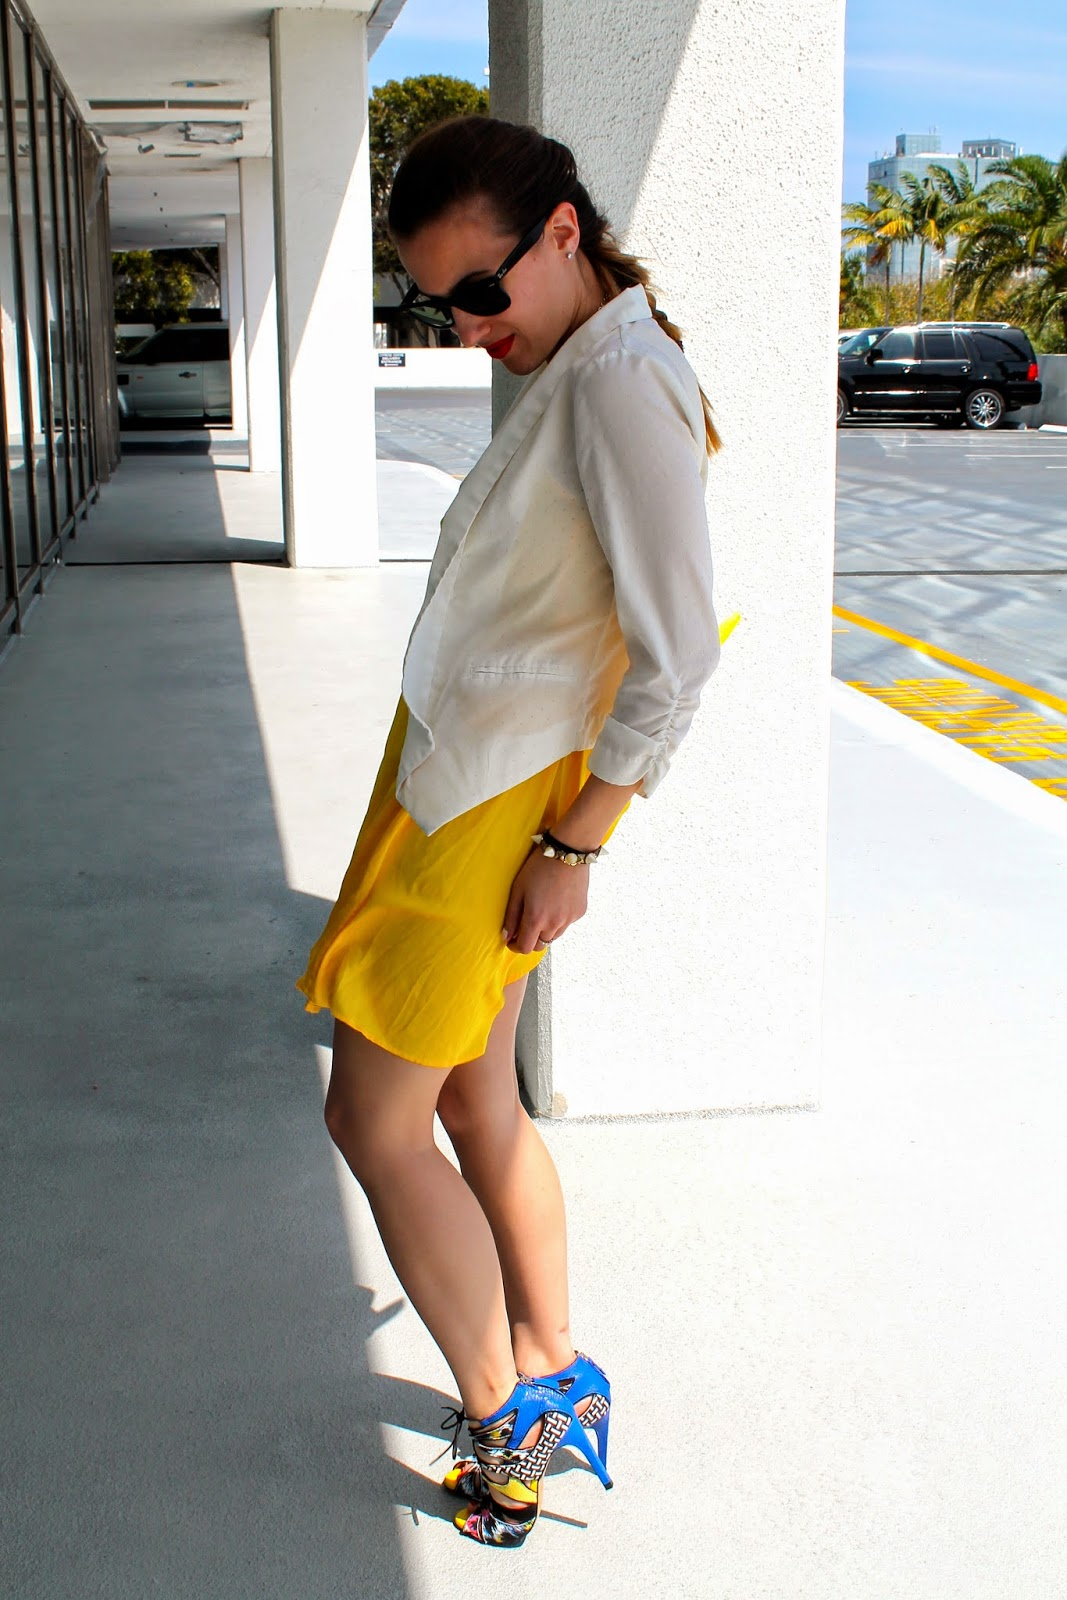 ZARA, Nordstrom, consignment, edgy, prep, Miami, Miami fashion, ootd, office style, what i wore, fashion, style